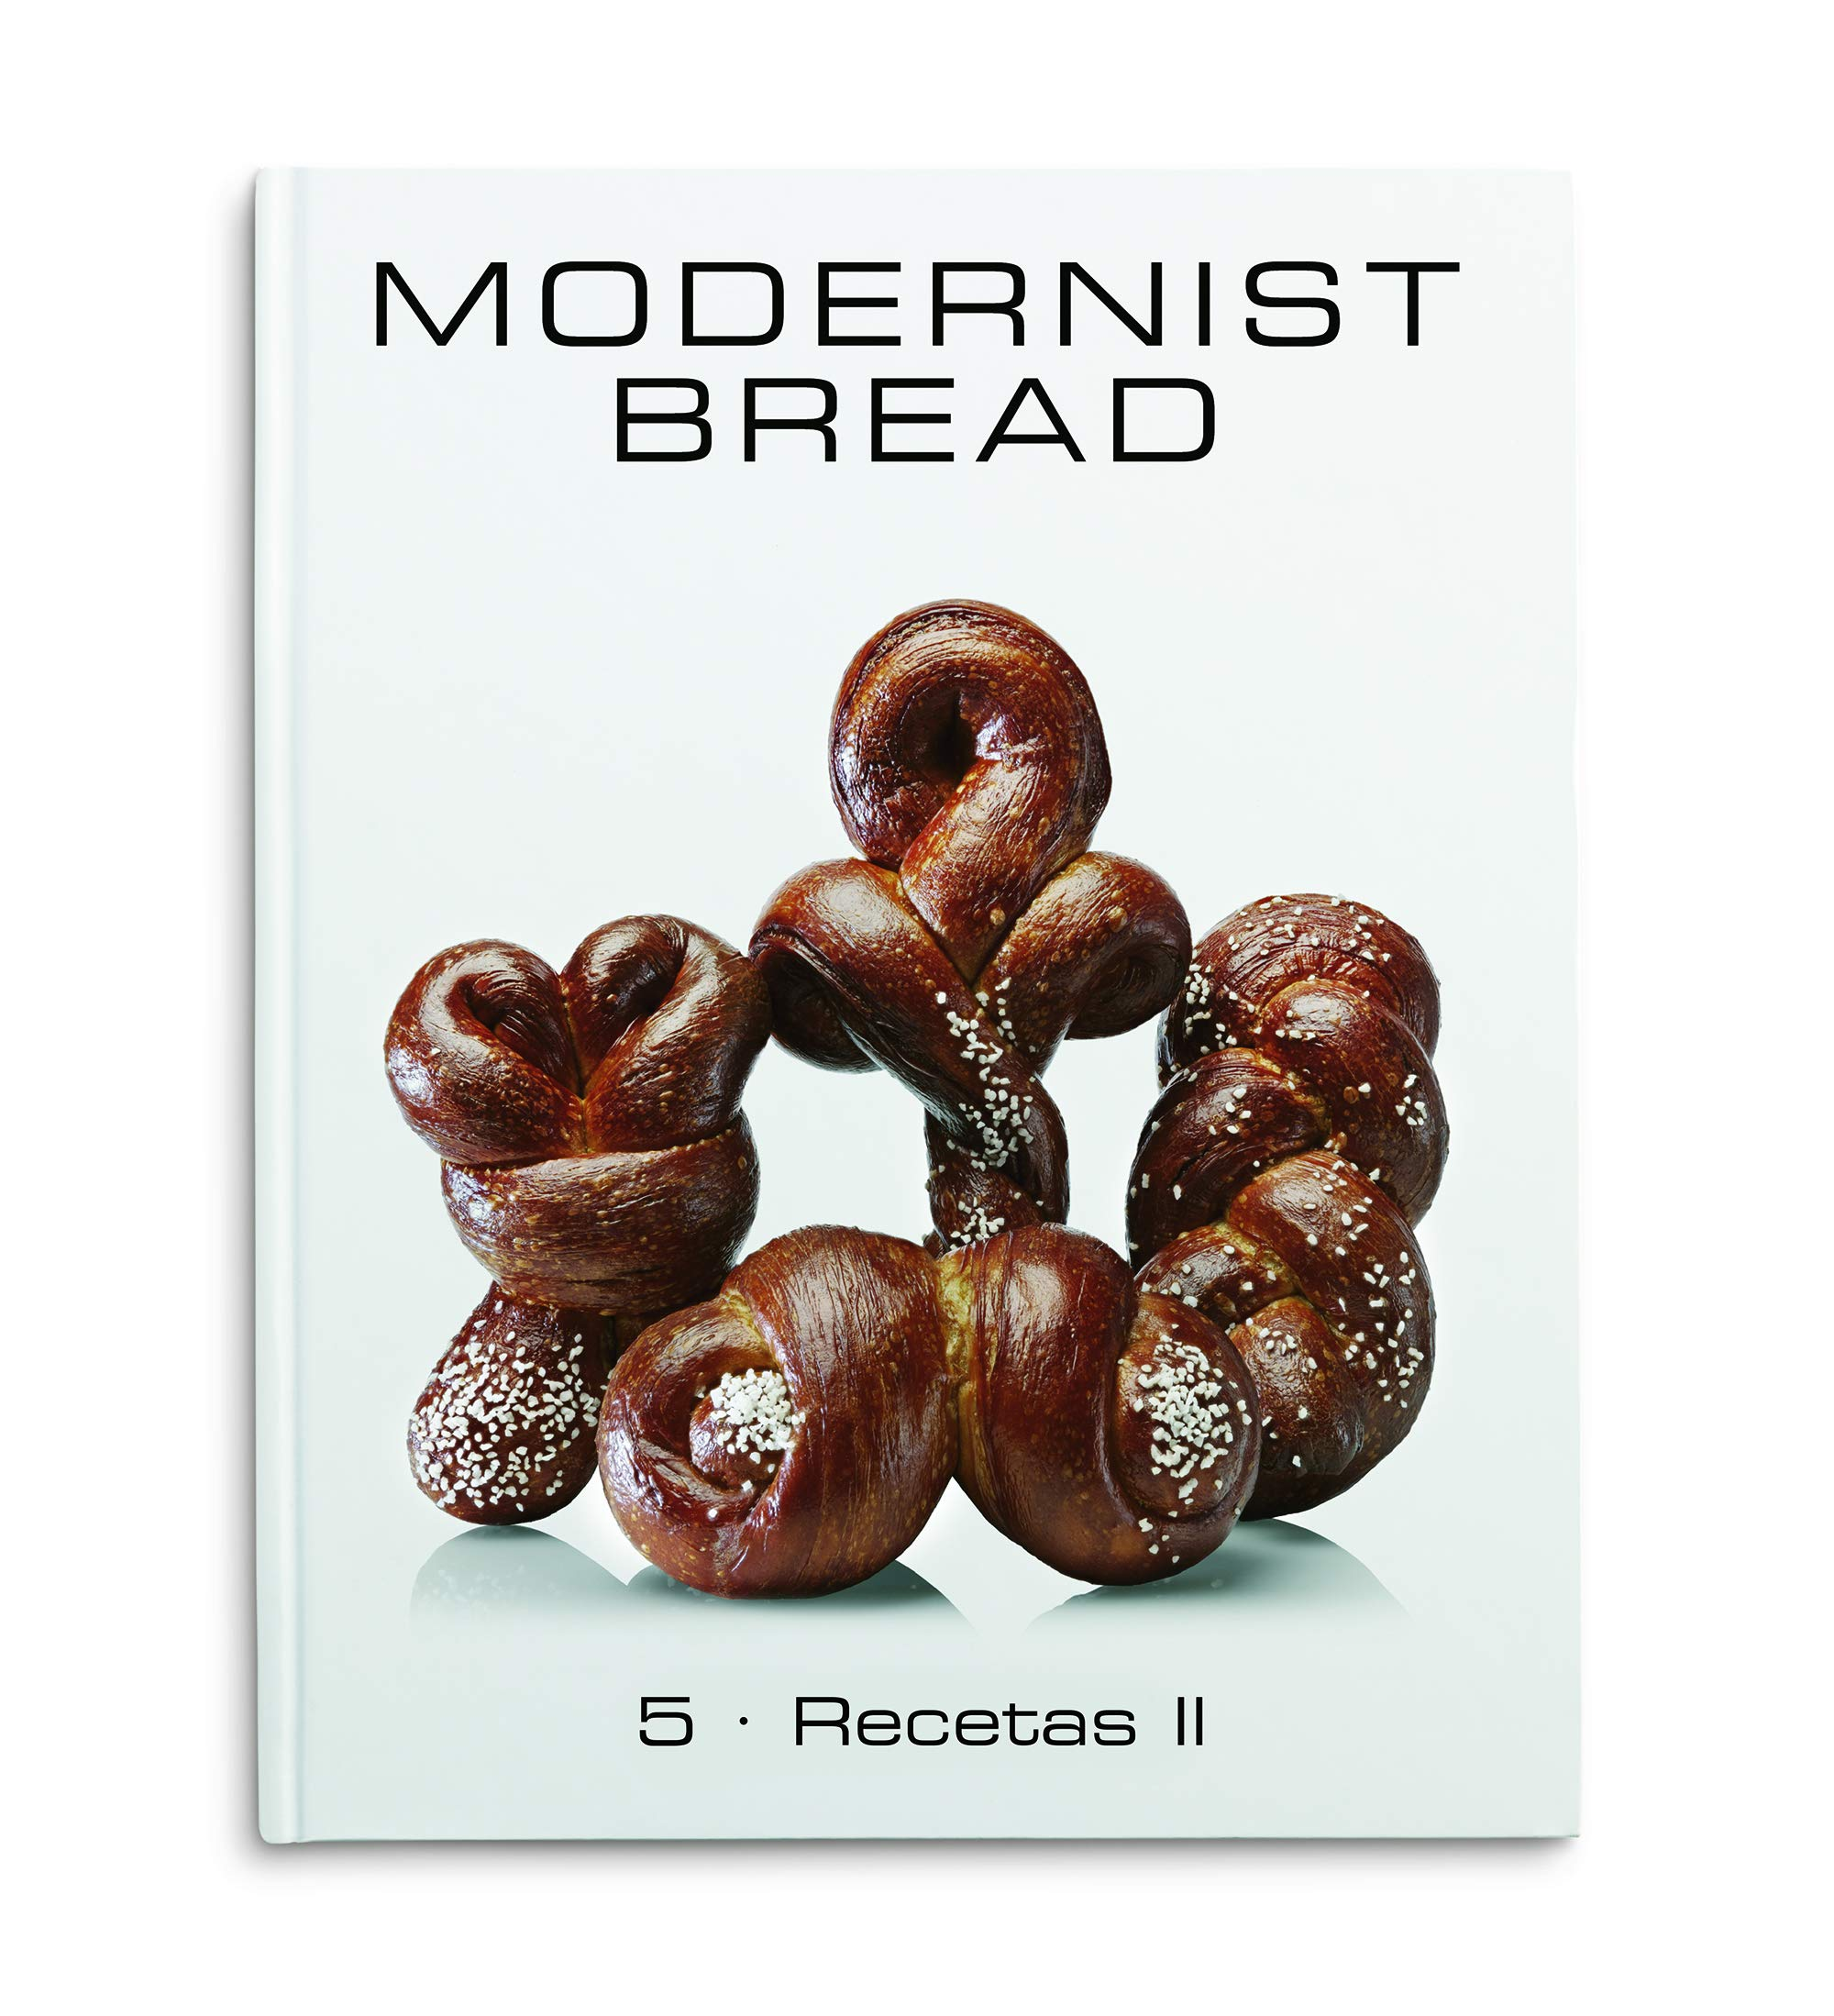 Modernist Bread Spanish Edition (FOOD-COOK): Amazon.es: Nathan ...